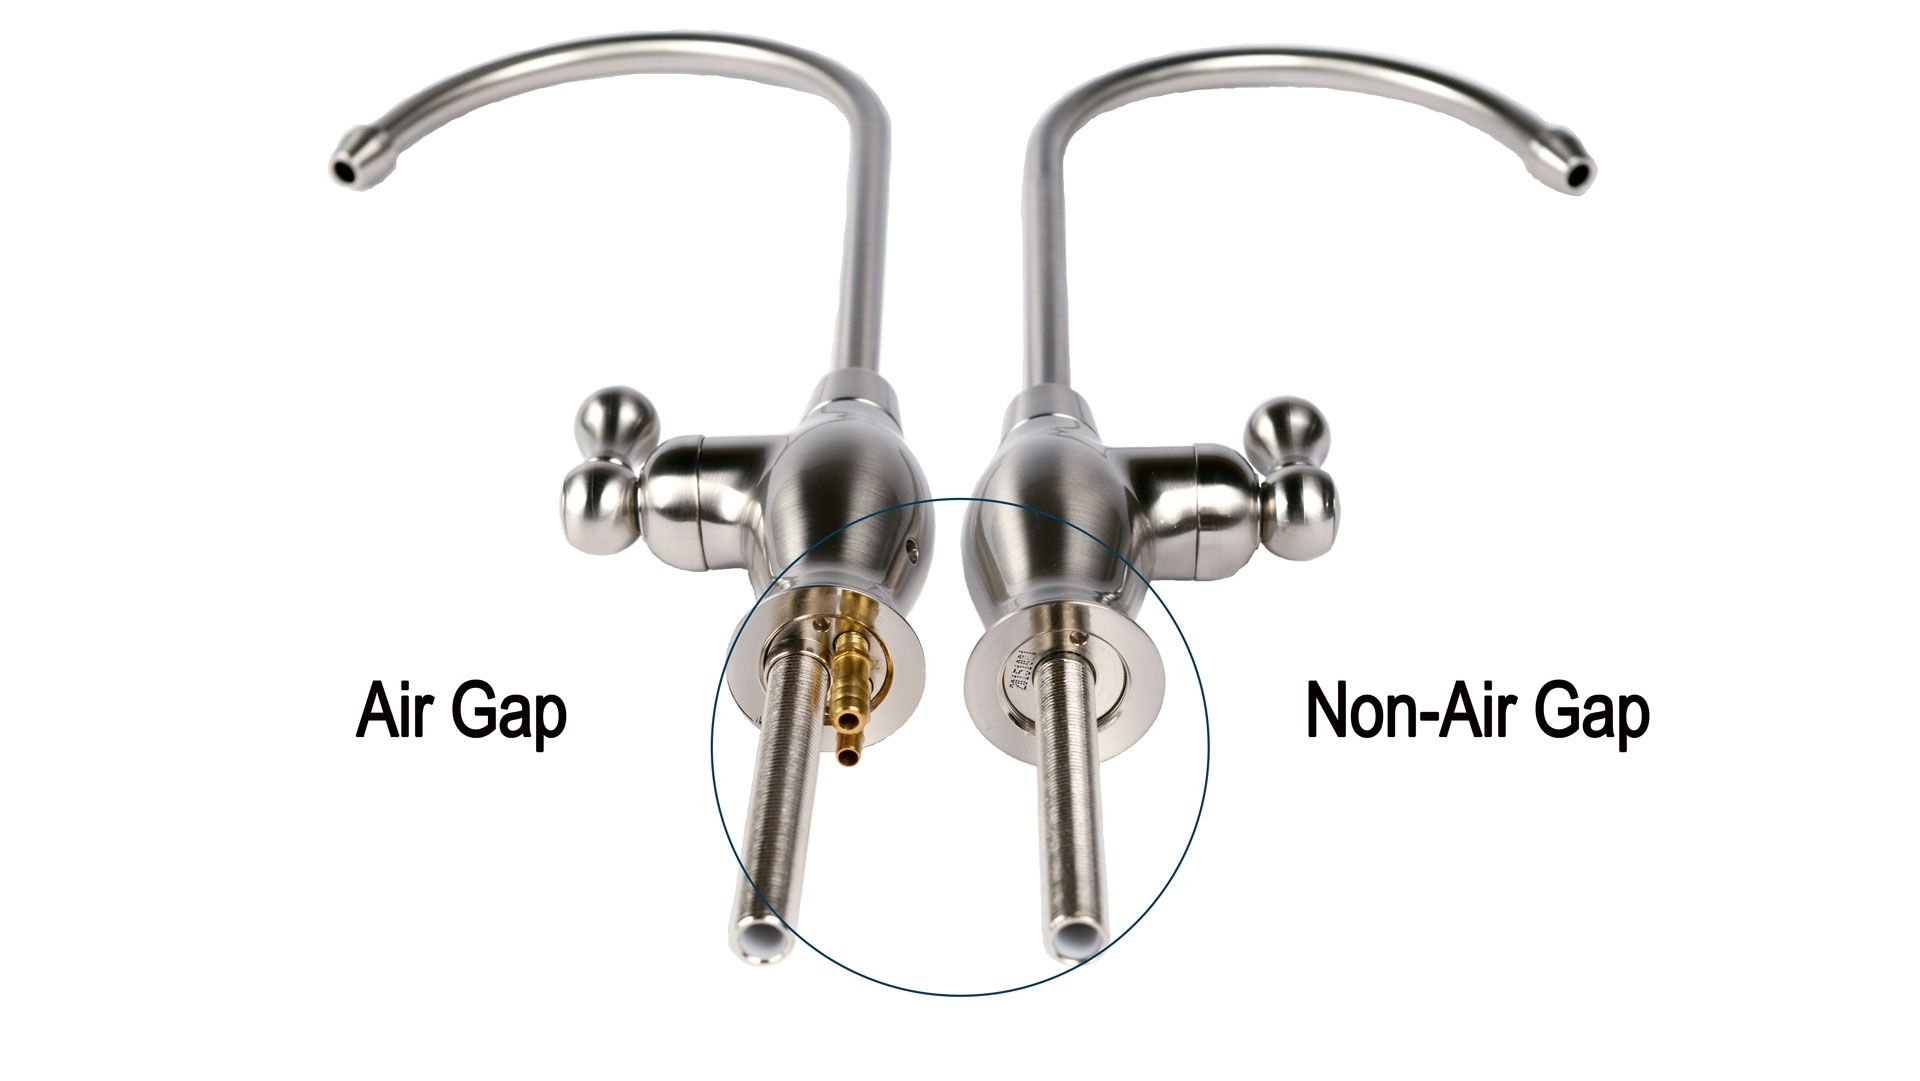 ro faucet air gap noise ro faucet air gap noise air gap vs non air gap faucet esp water products 1920 x 1081